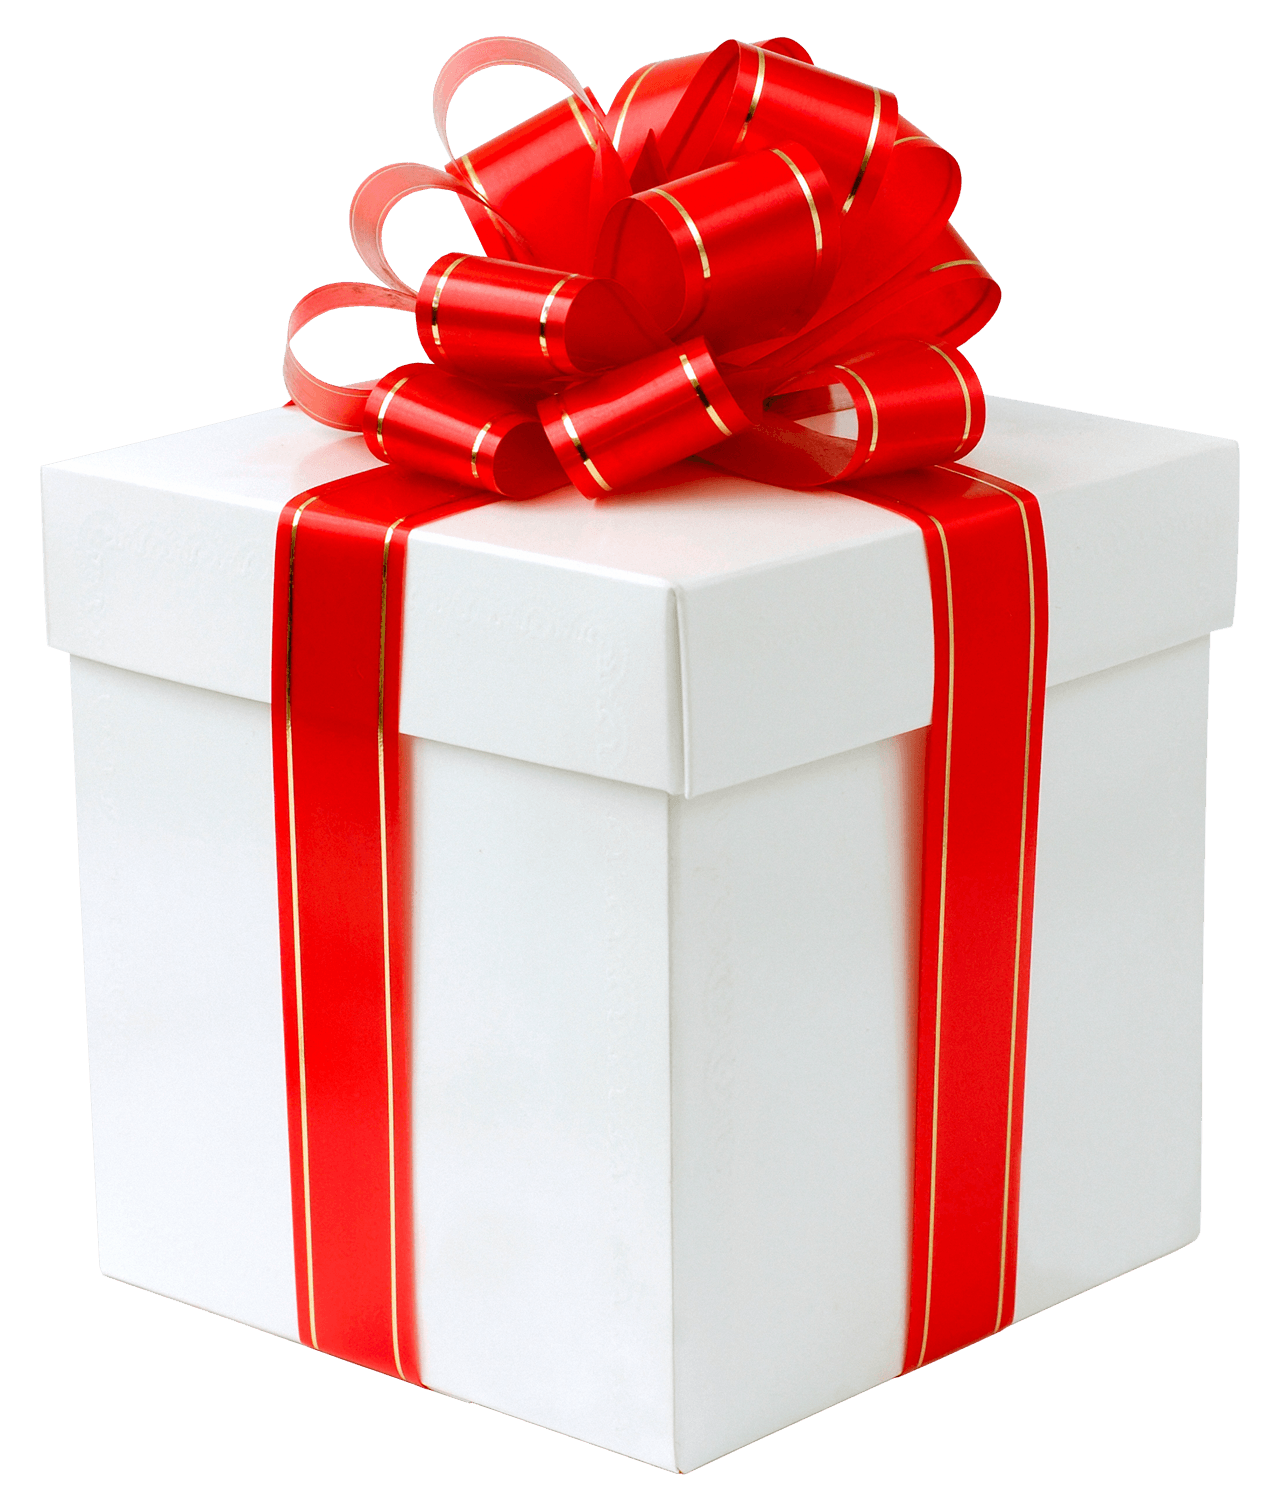 White Gift Box with Red Bow PNG Clipart - How Smart People Over 35 Are Finally